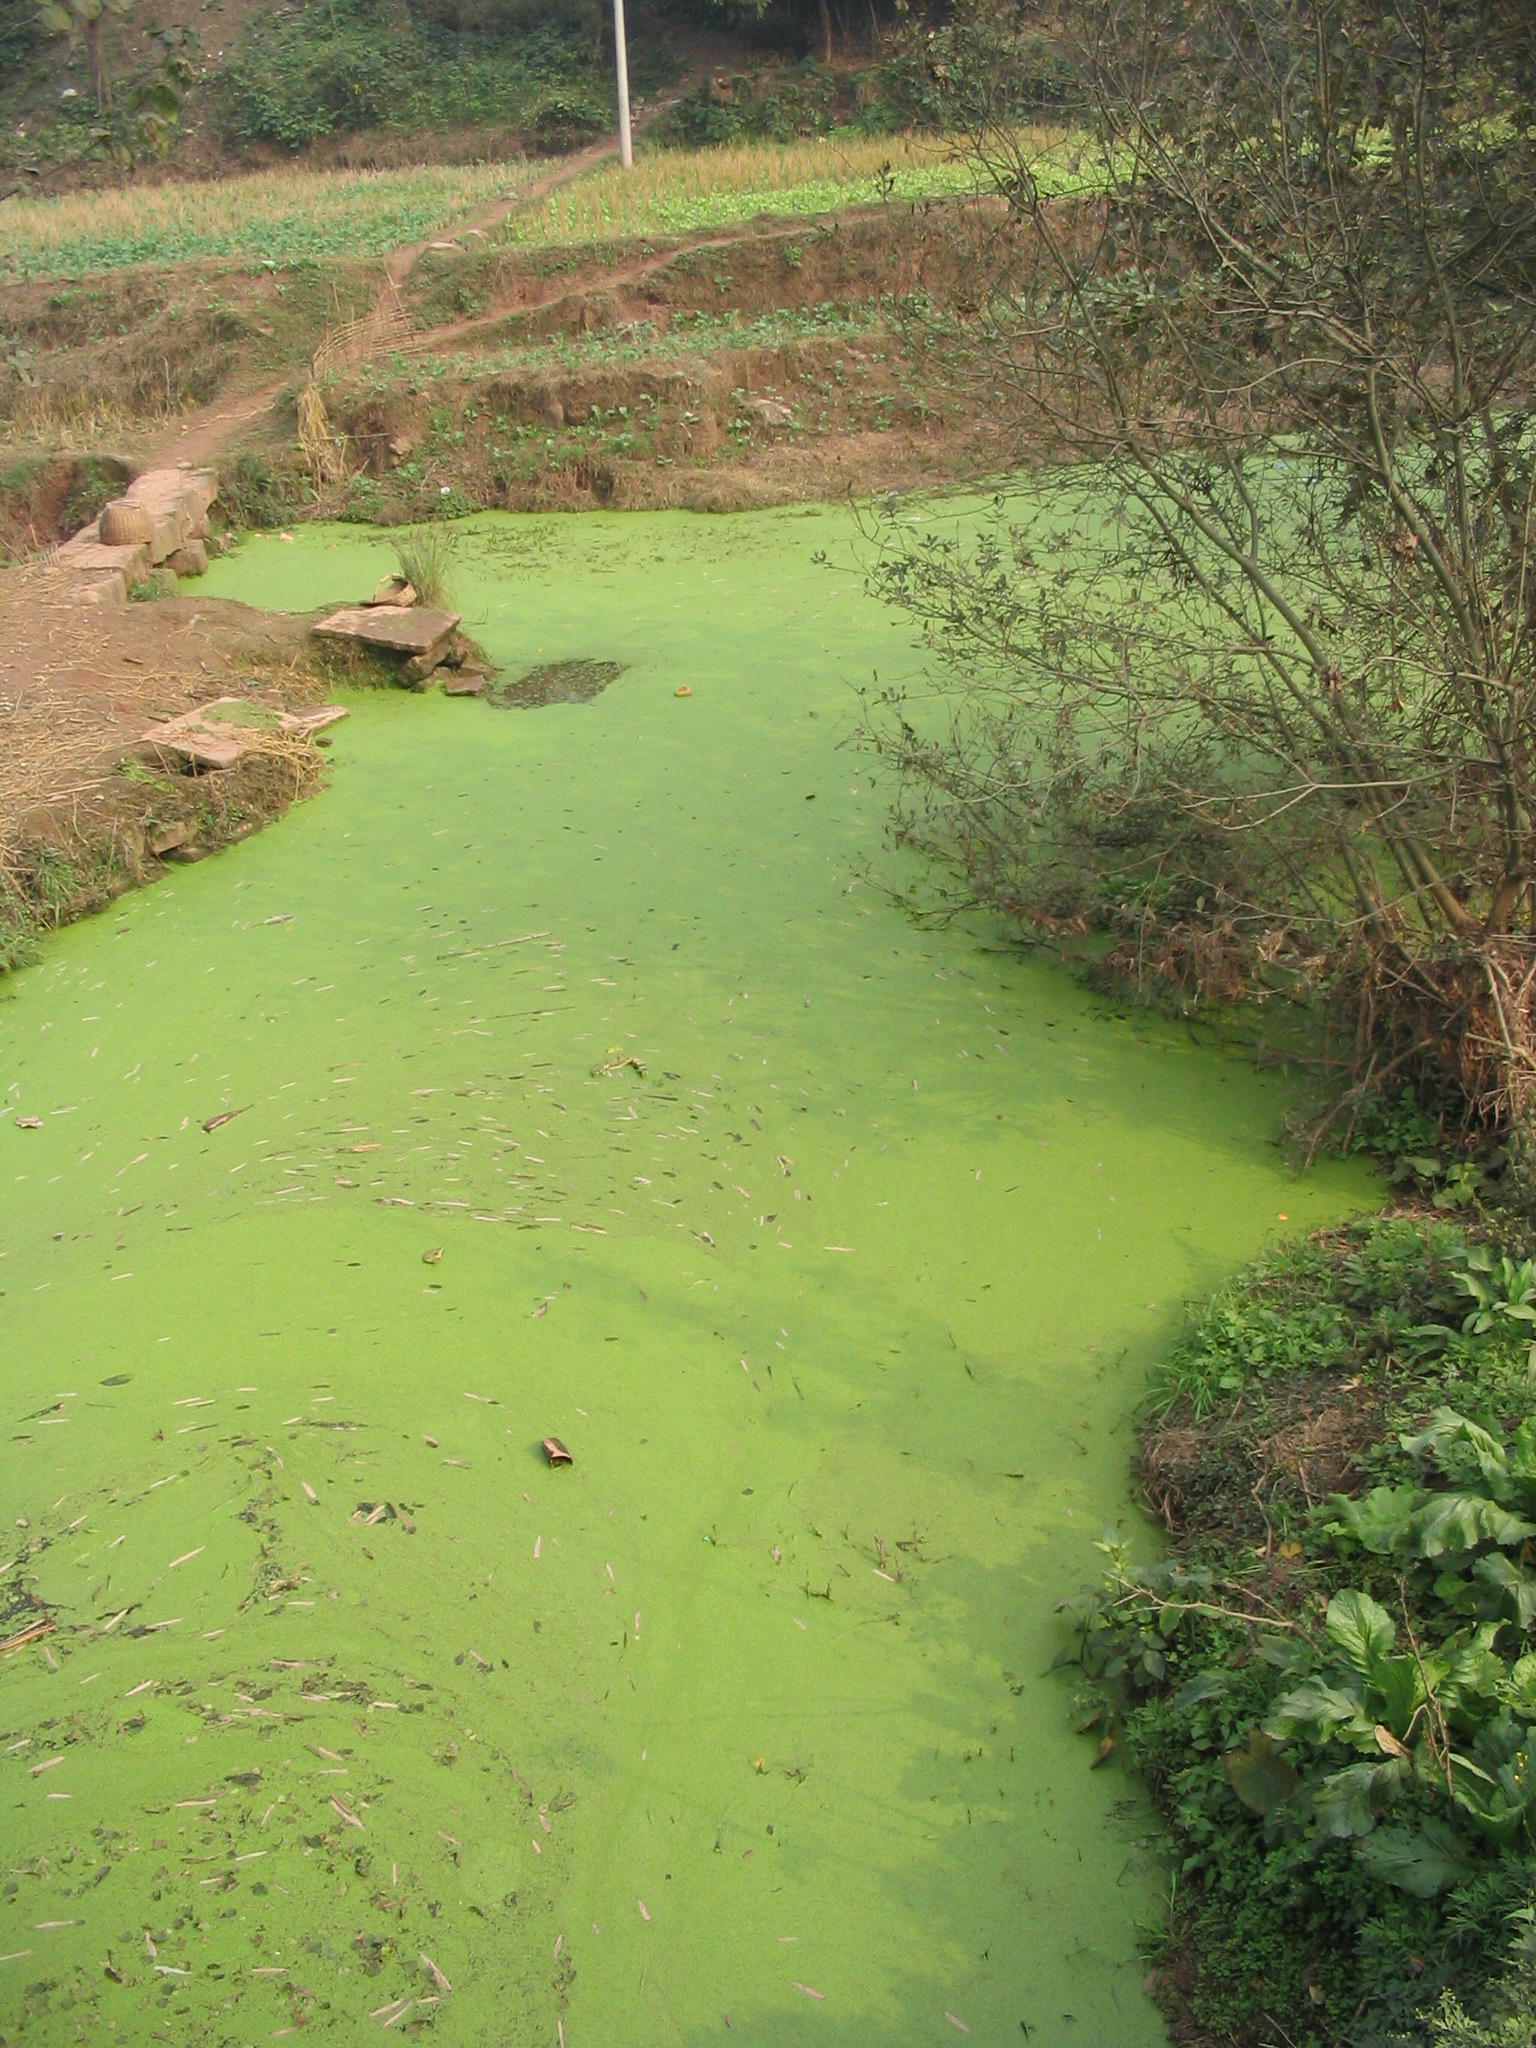 algal blooms Bluegreen algae, or cyanobacteria, are simple life forms closely related to bacteria that resemble true algae when conditions are right, cyanobacteria will bloom are can turn lake water turbid with green, blue-green, or reddish-brown colored algae.